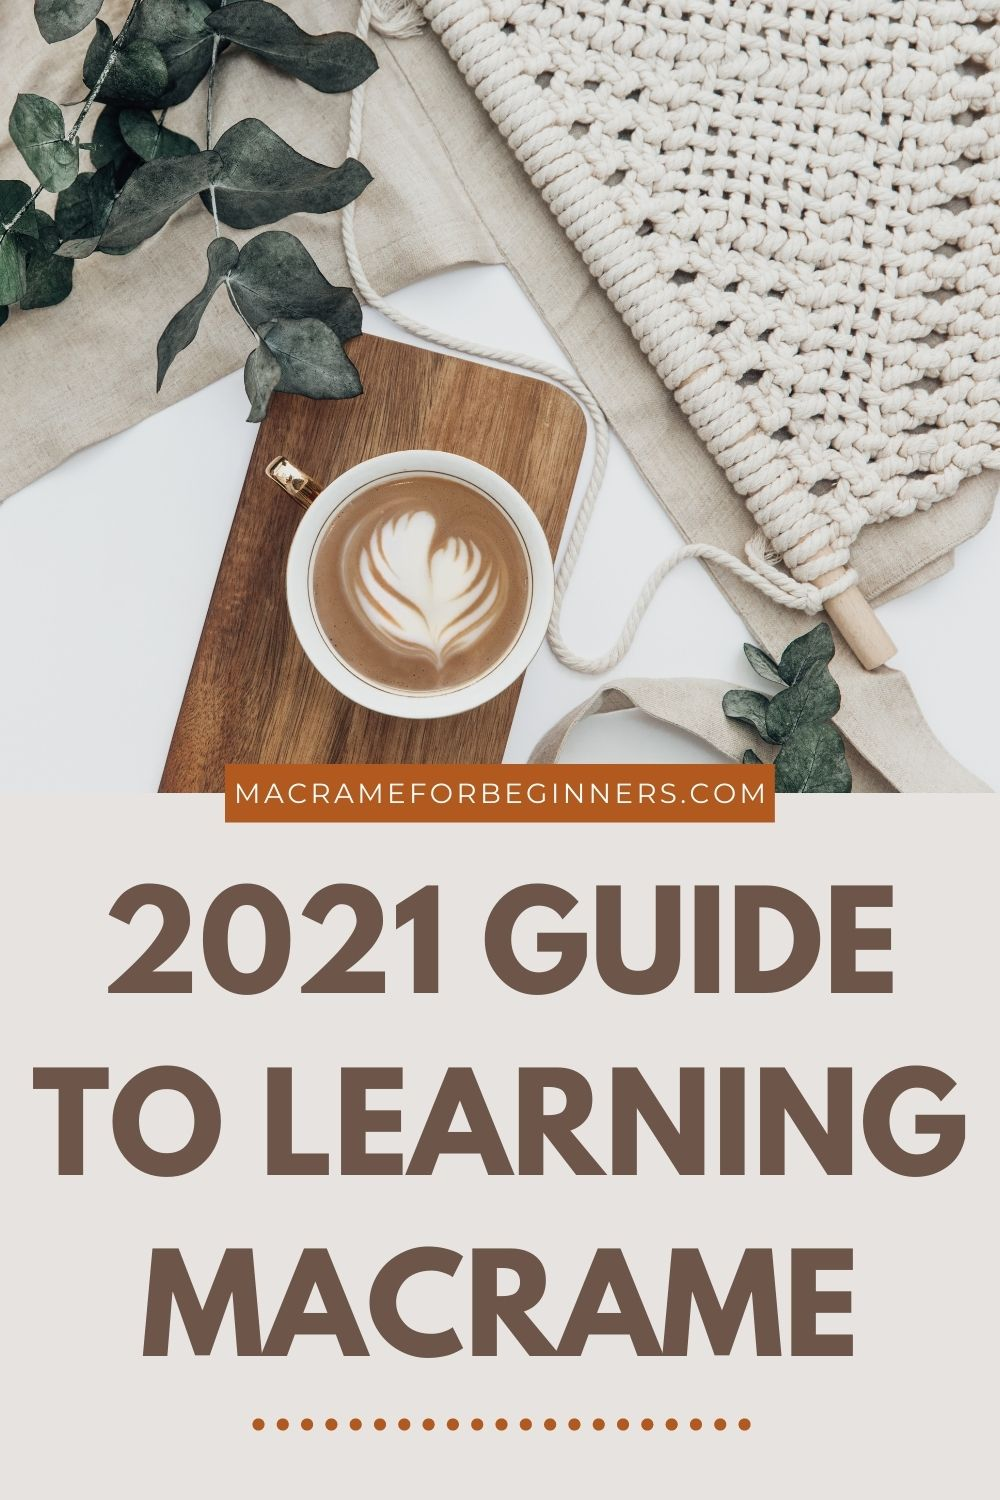 2021 Macrame Guide - How to Start with Macrame in 2021 - Super Quick Guide for Beginners 1